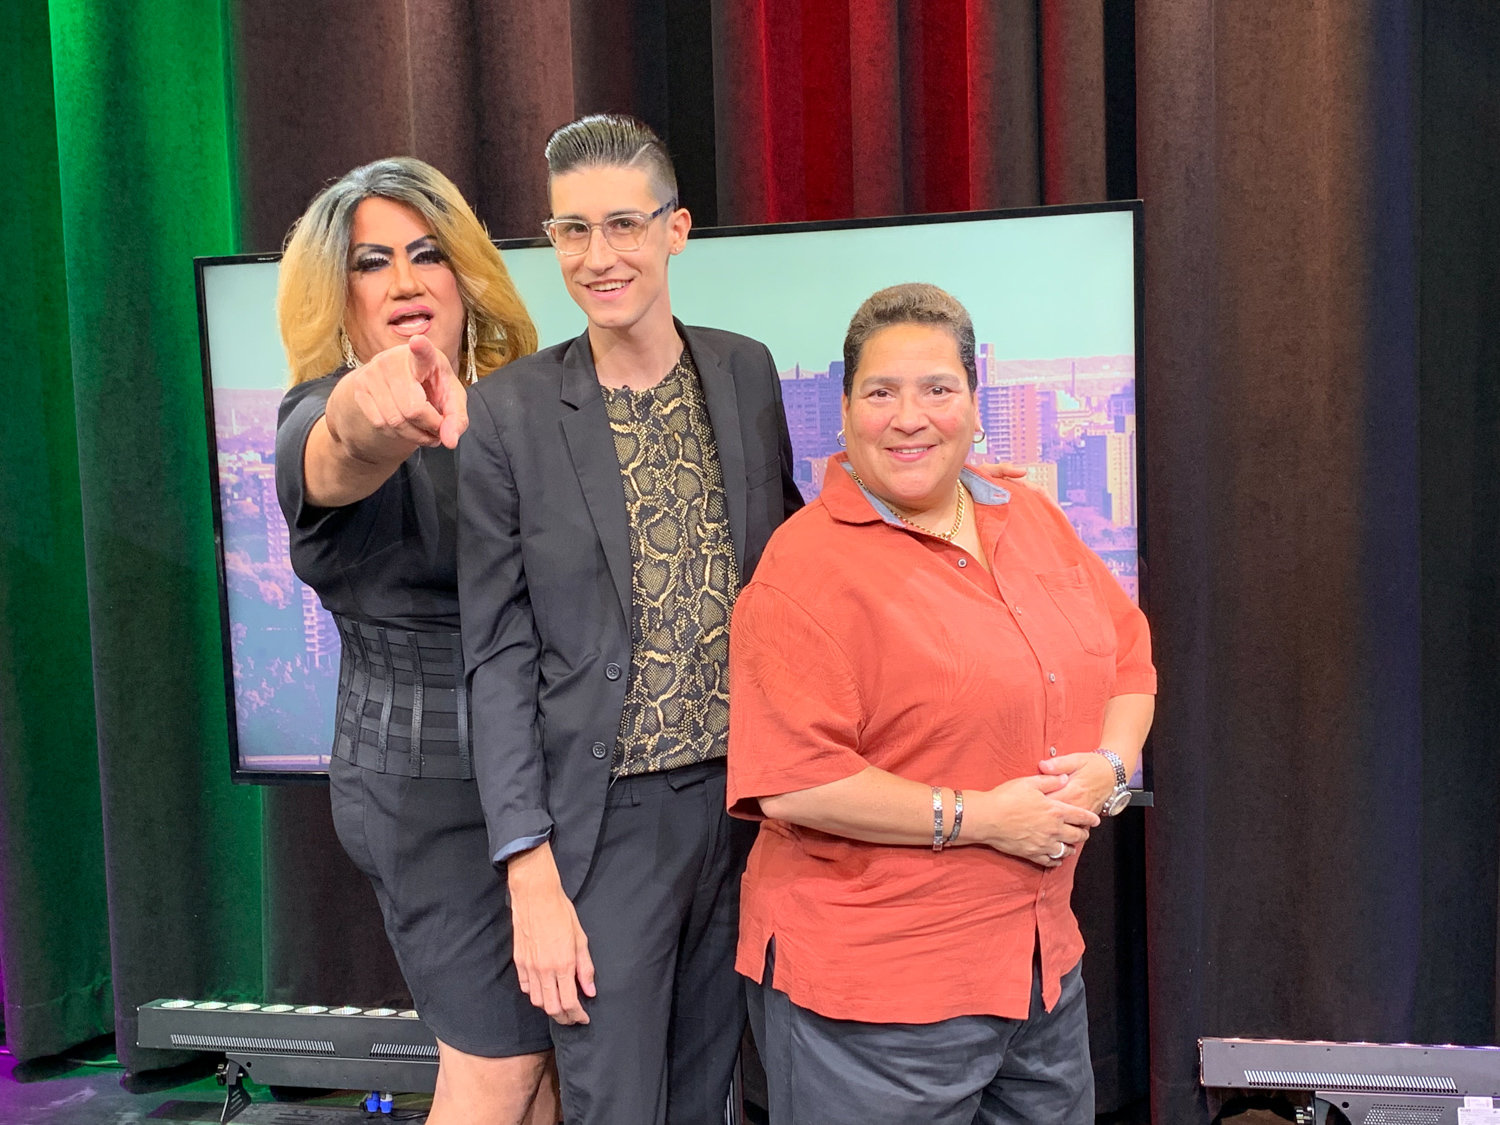 'Out Loud' host Anthony Parker, center, stands with local personality Apollonia Cruz, left, better known as 'Queen of the Bronx,' as well as Audrey DeJesus, right, an entrepreneur who hopes to open a gay bar in the borough.